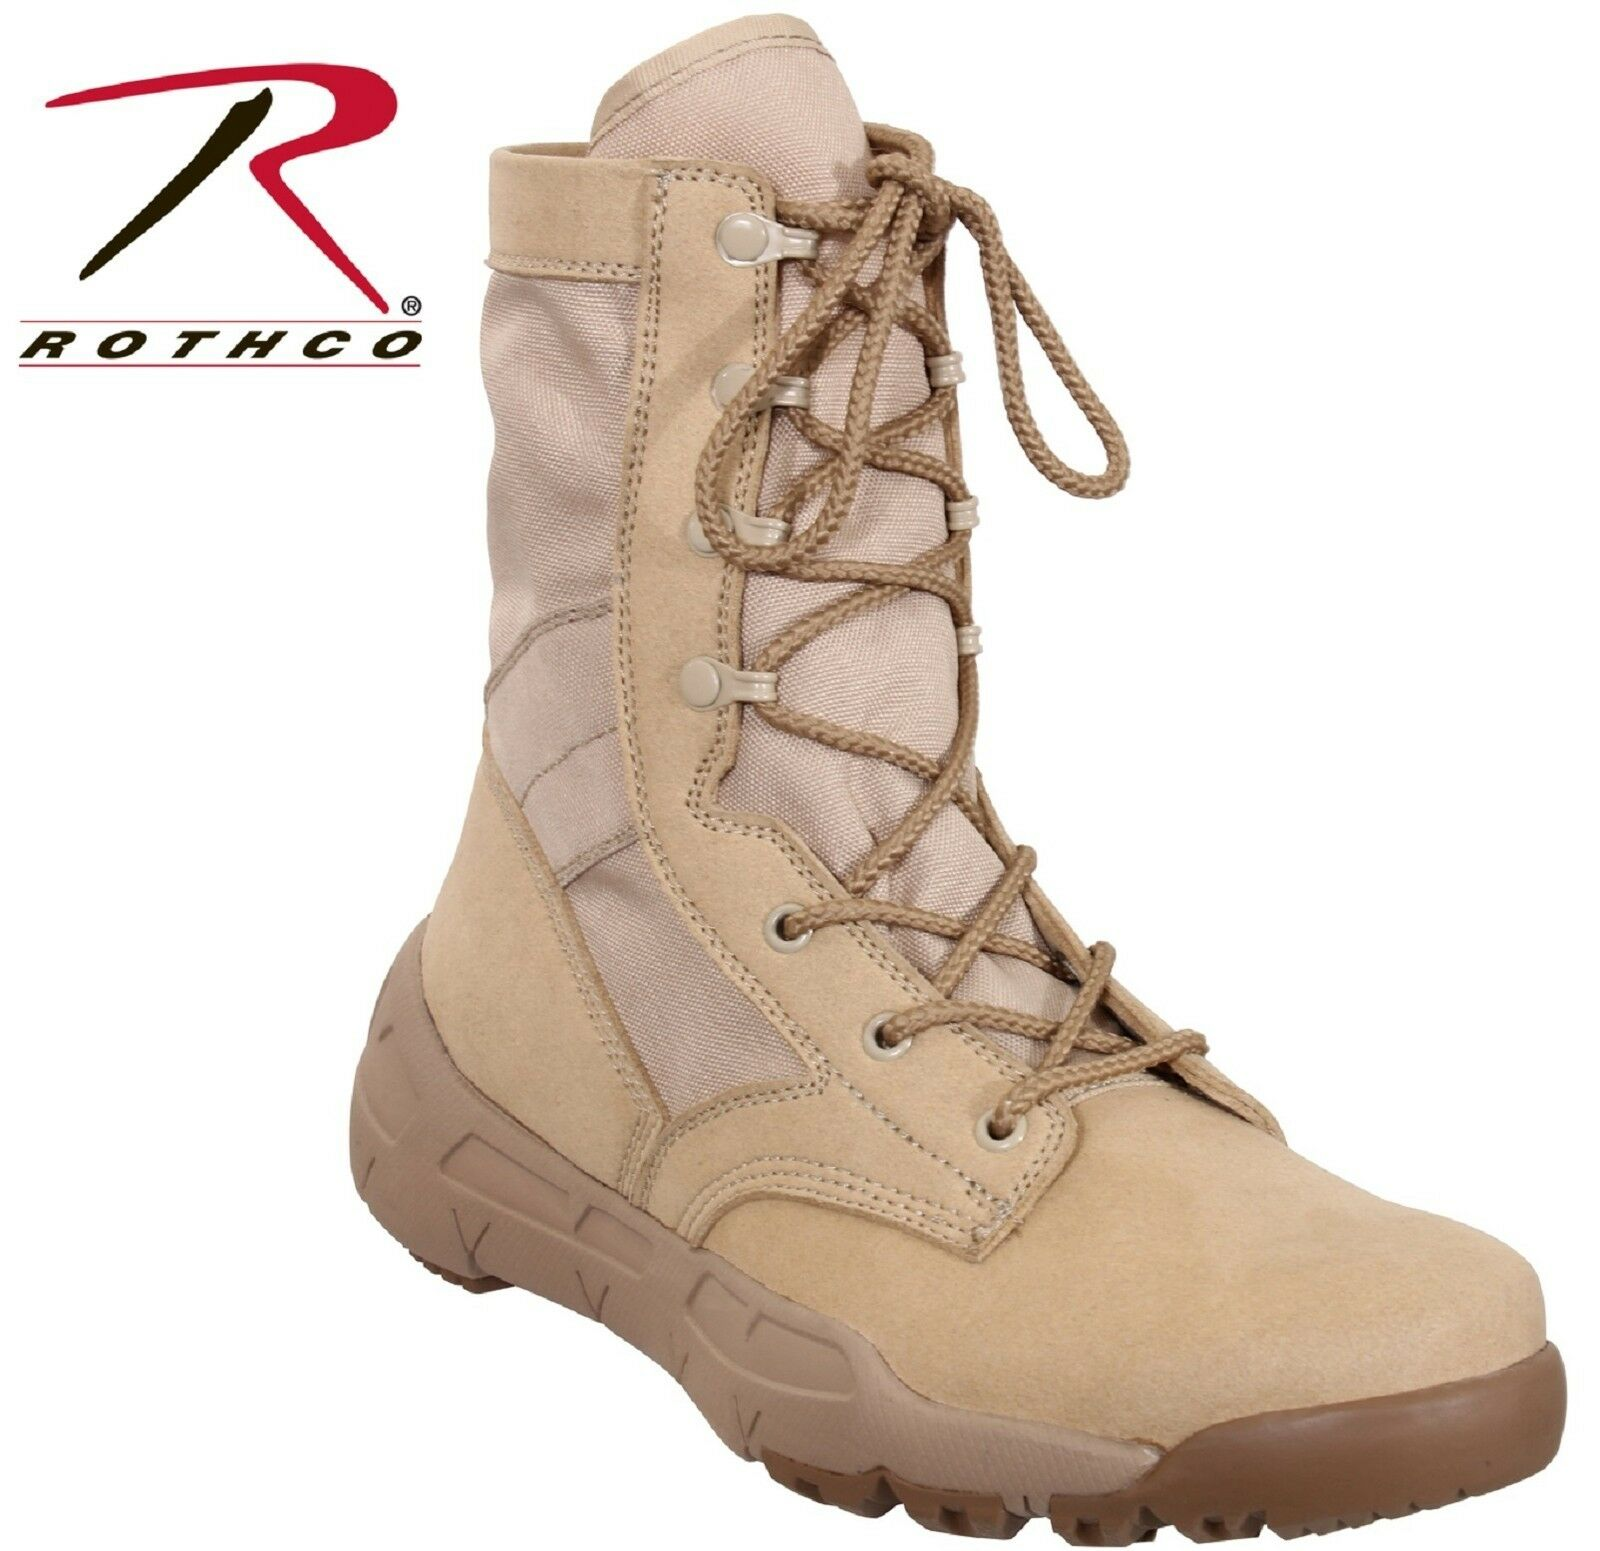 Lightweight V-Max Tactical Stiefel Stiefel Stiefel - Rothco Desert Tan 8.5  Field Duty Work Stiefel 410827